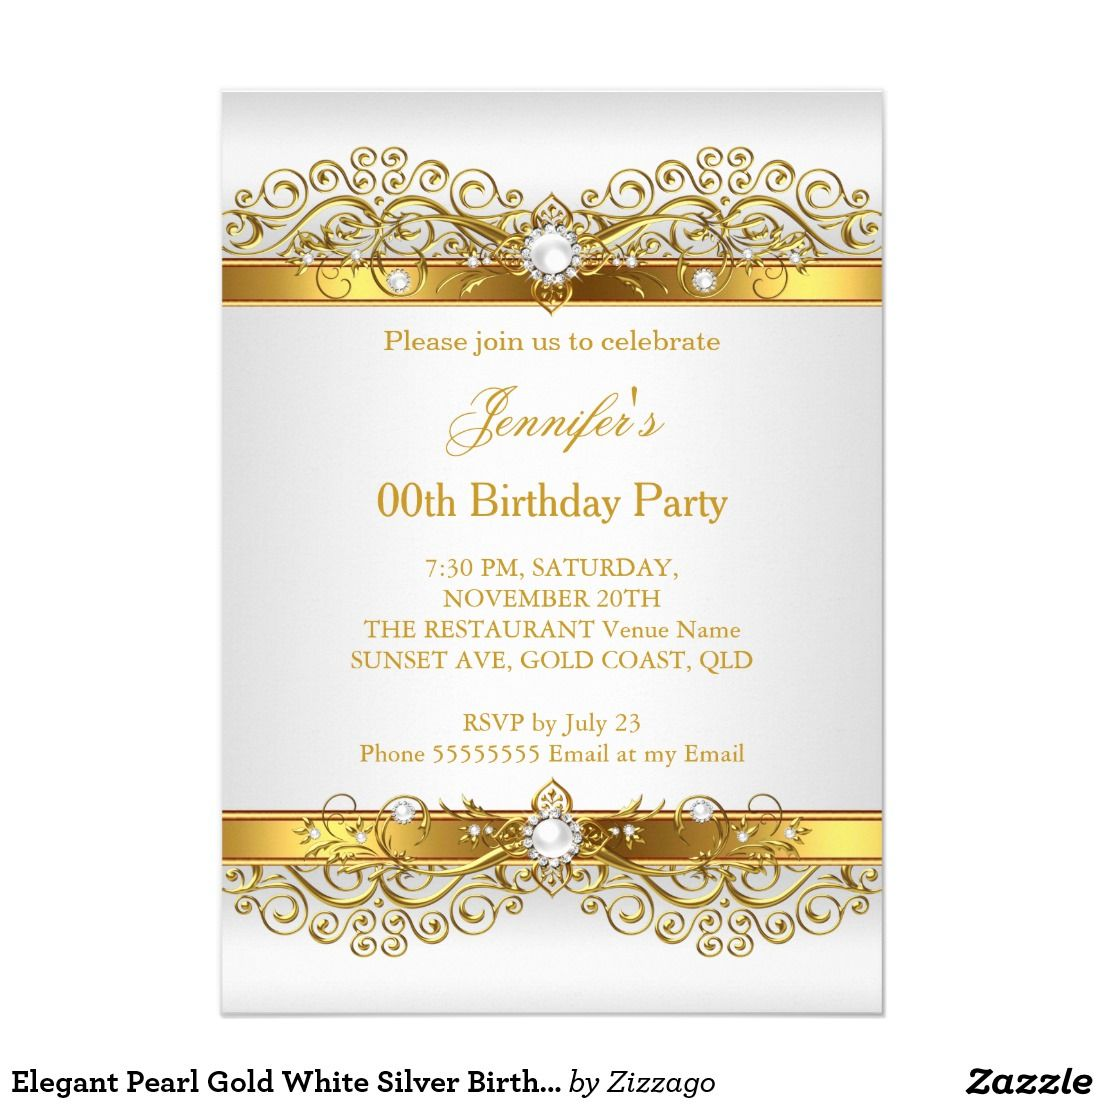 Elegant Pearl Gold White Silver Birthday Party Invitation Zazzle